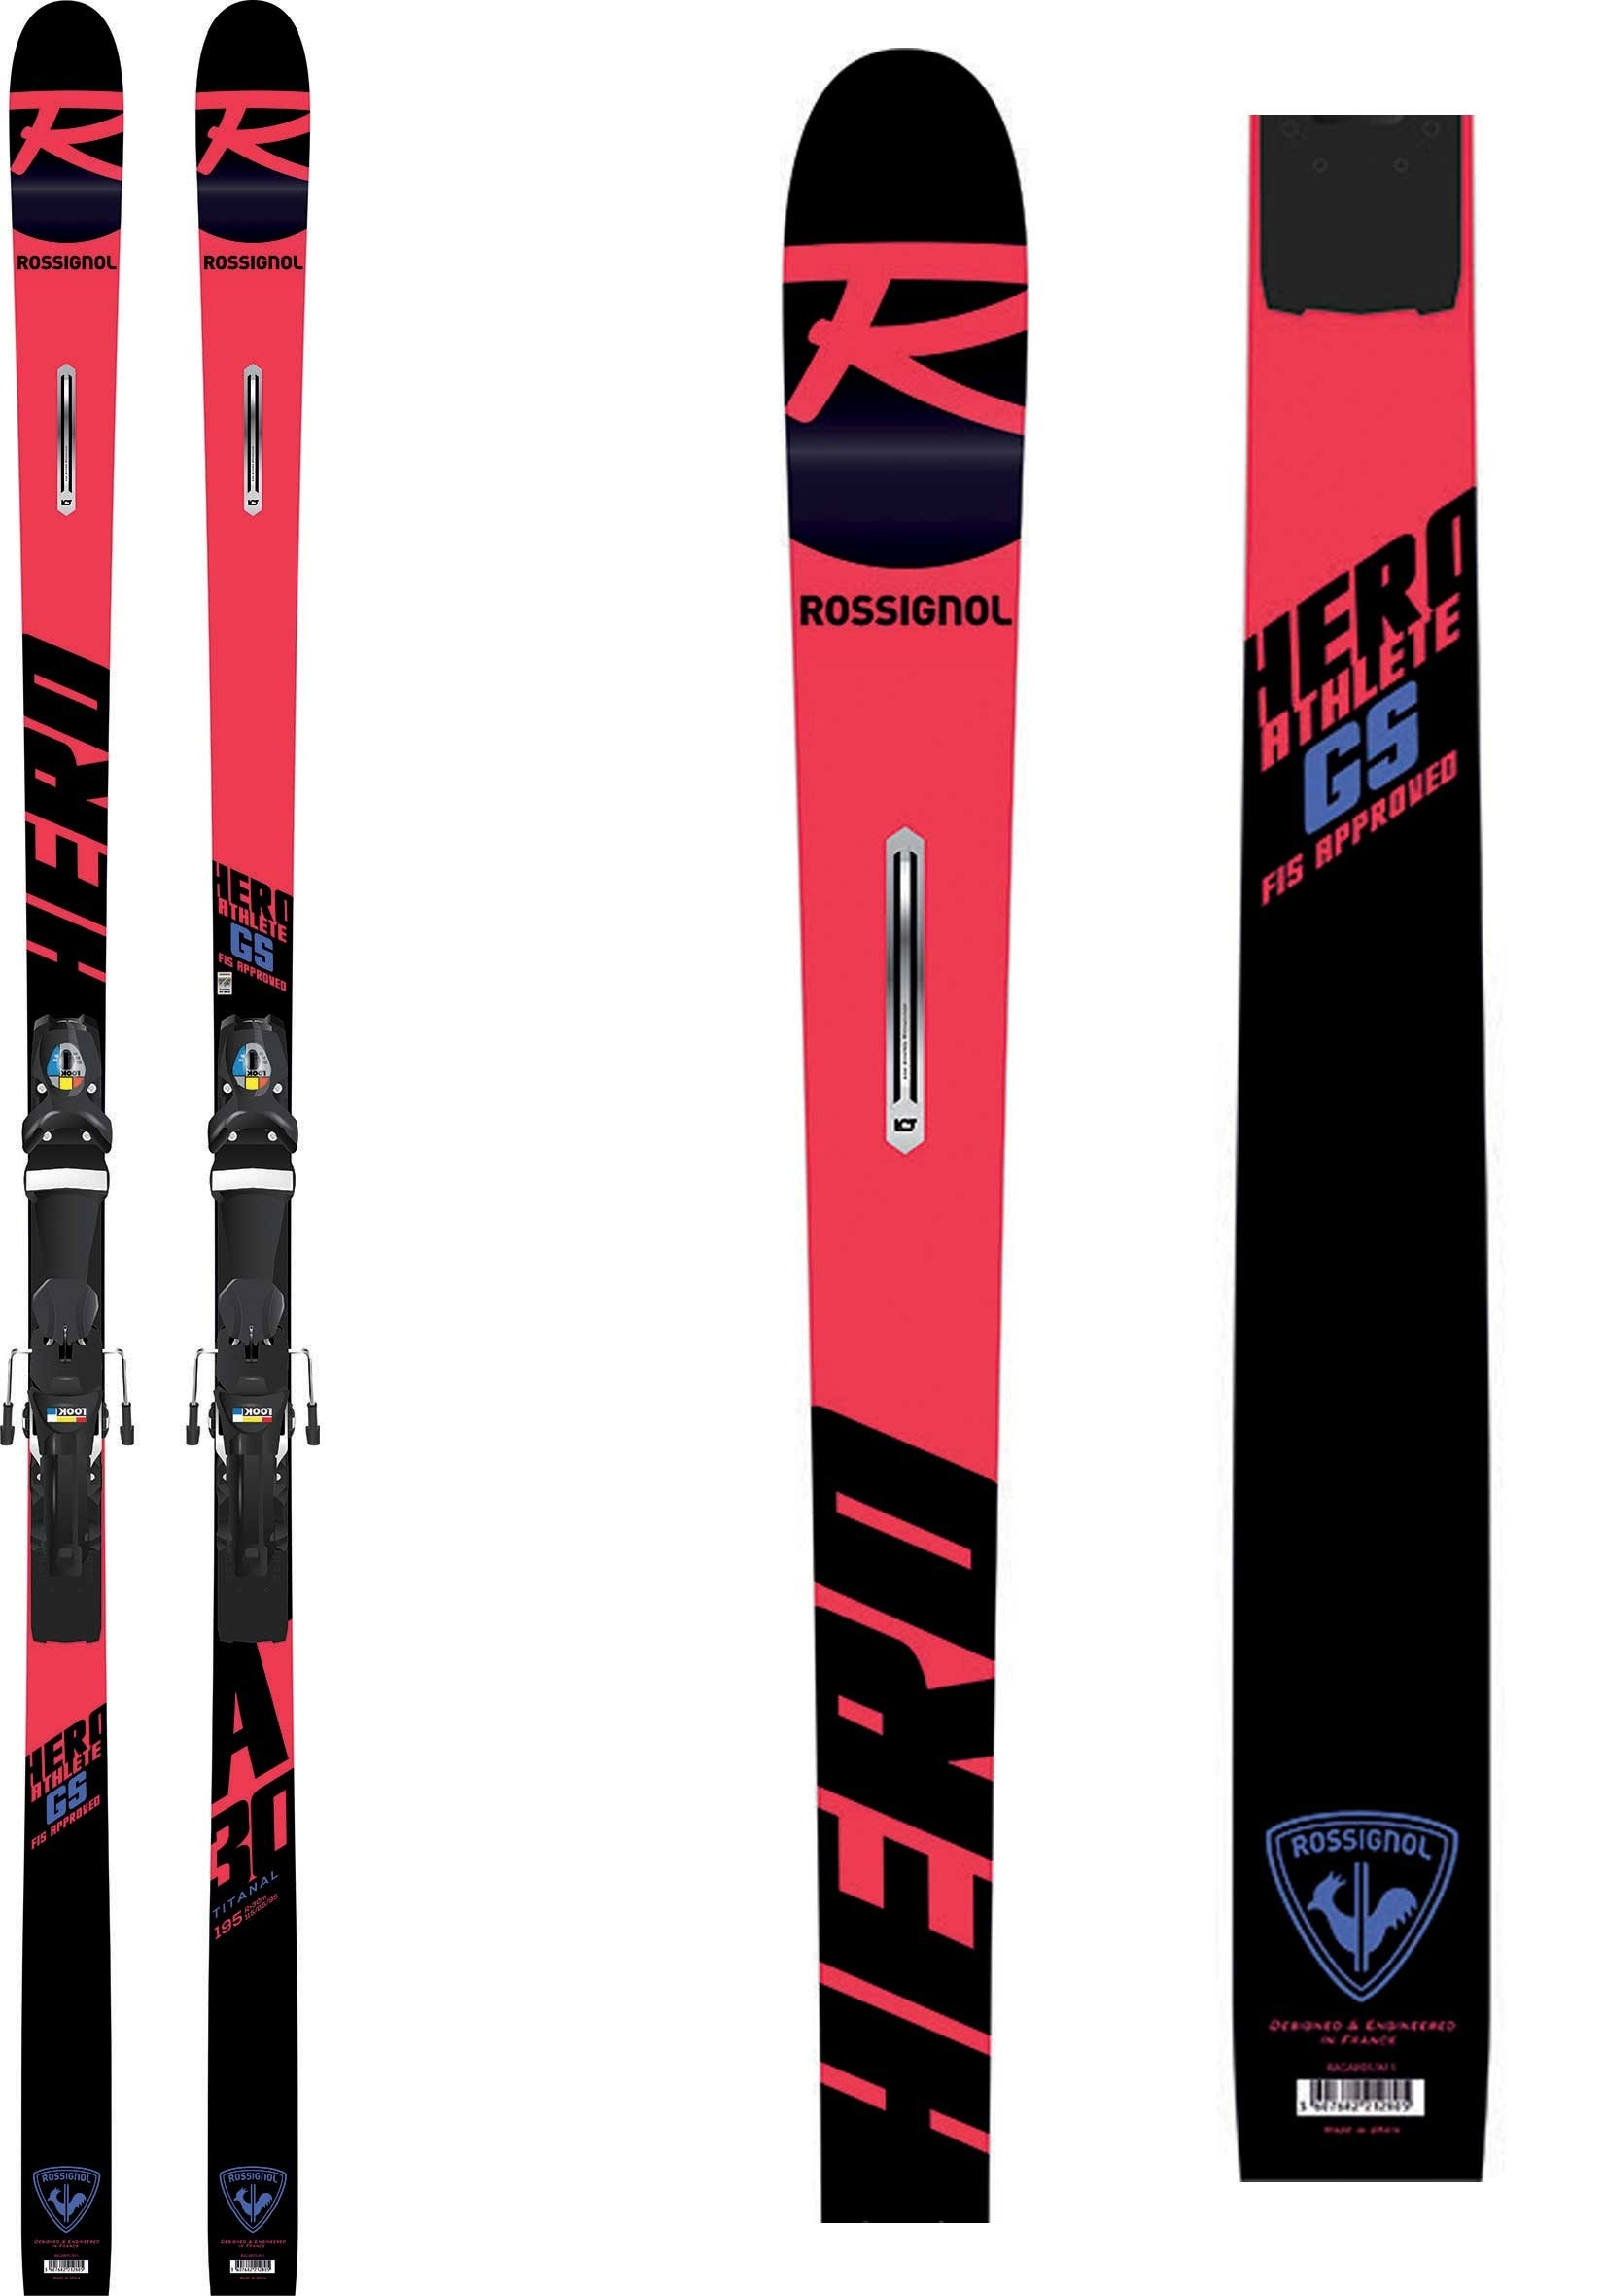 Rossignol skis Hero Athlete FIS GS (R22), 2019